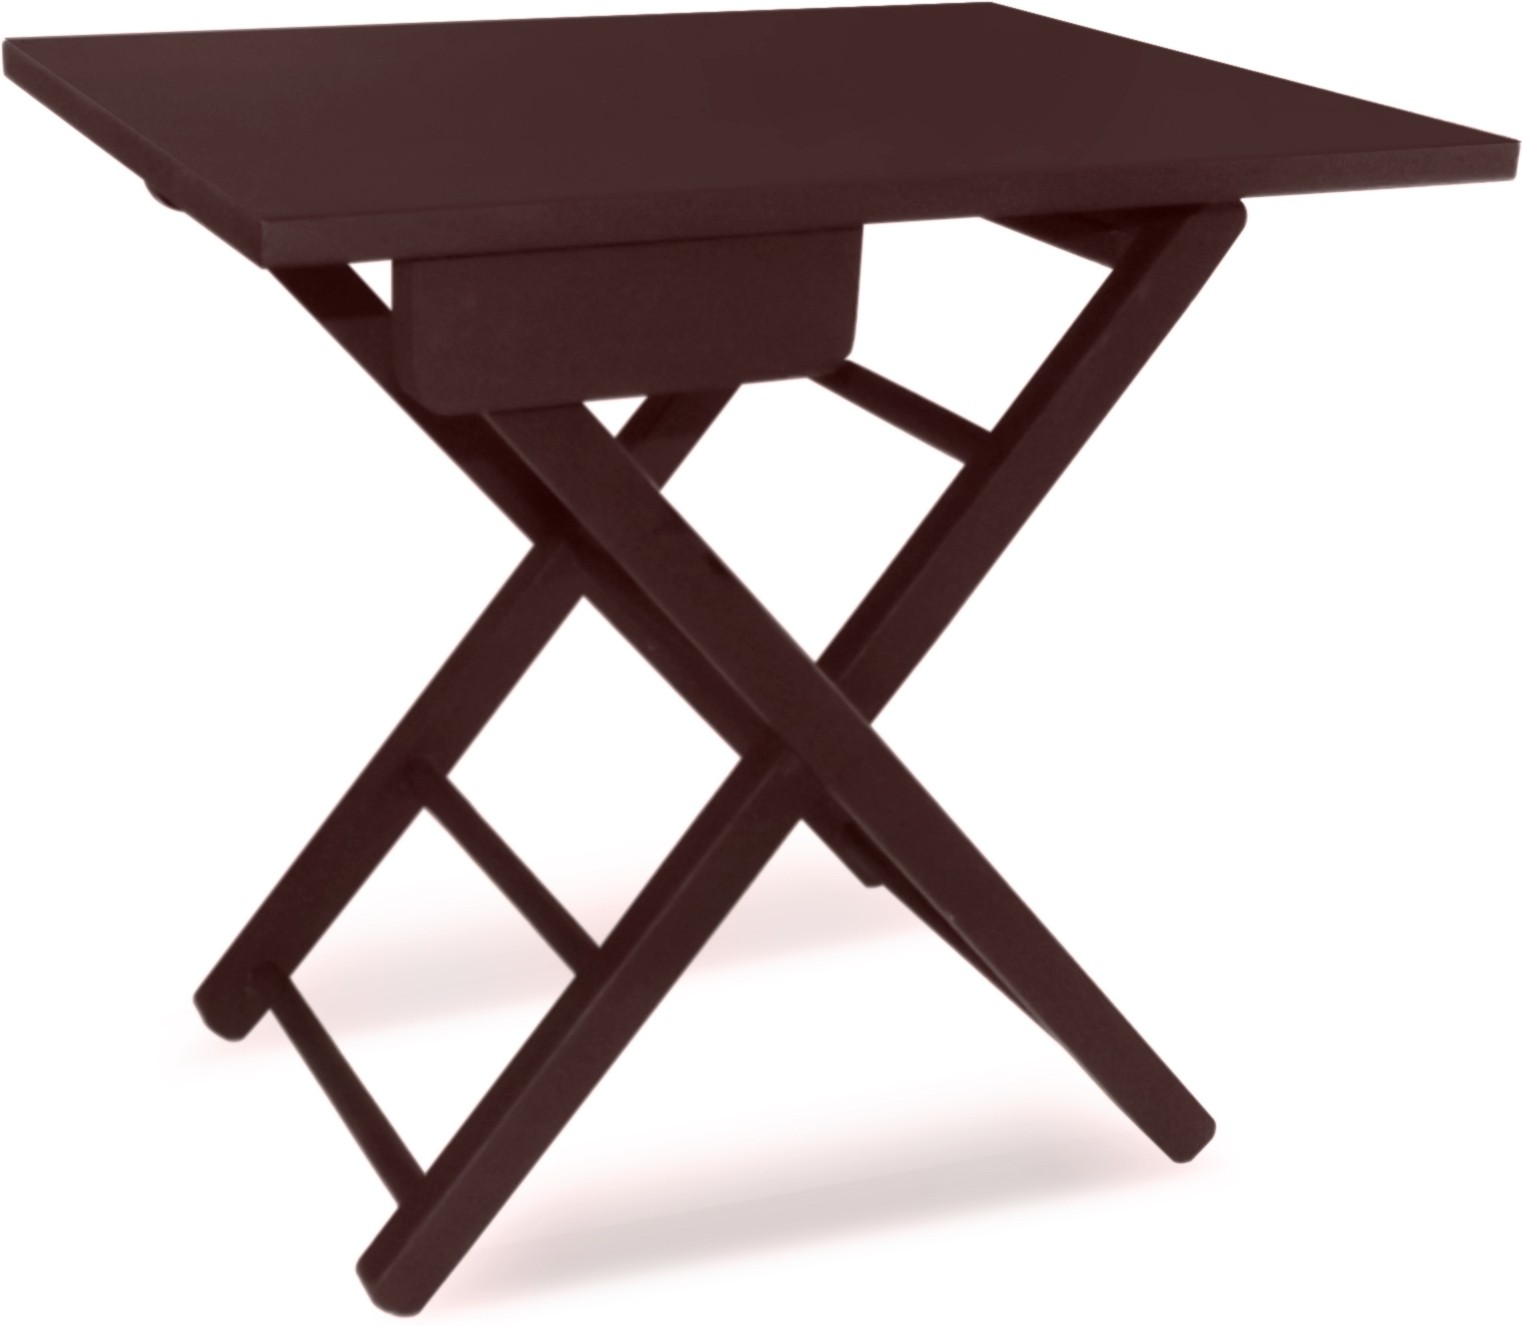 View Colorwood Cosy Foldable Side Table Brown Solid Wood Coffee Table(Finish Color - Brawn) Furniture (Colorwood)